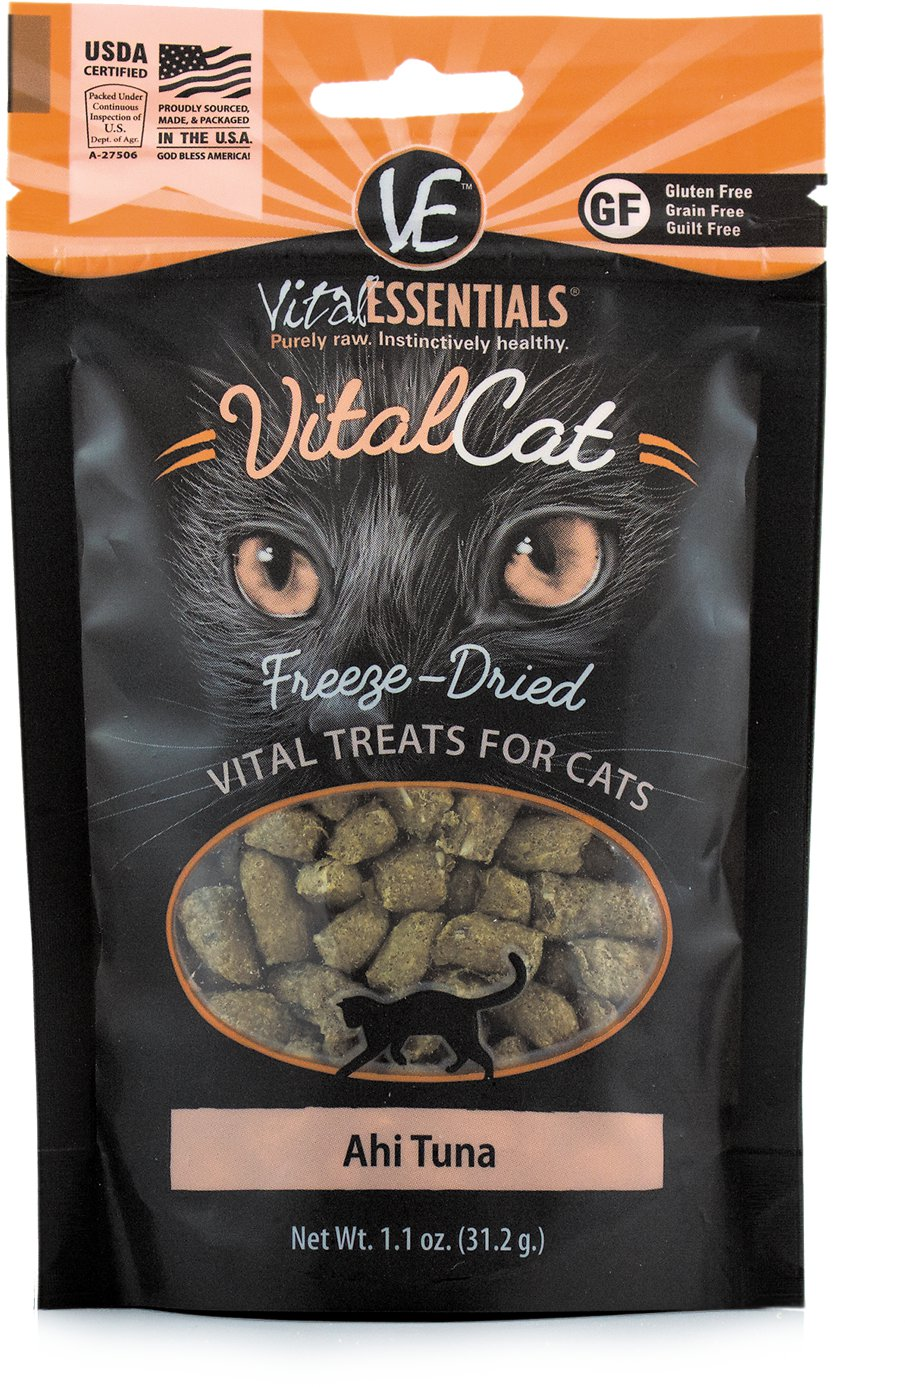 Vital Essentials Vital Cat Treats Ahi Tuna Freeze-Dried Cat Treats, 1.1-oz bag